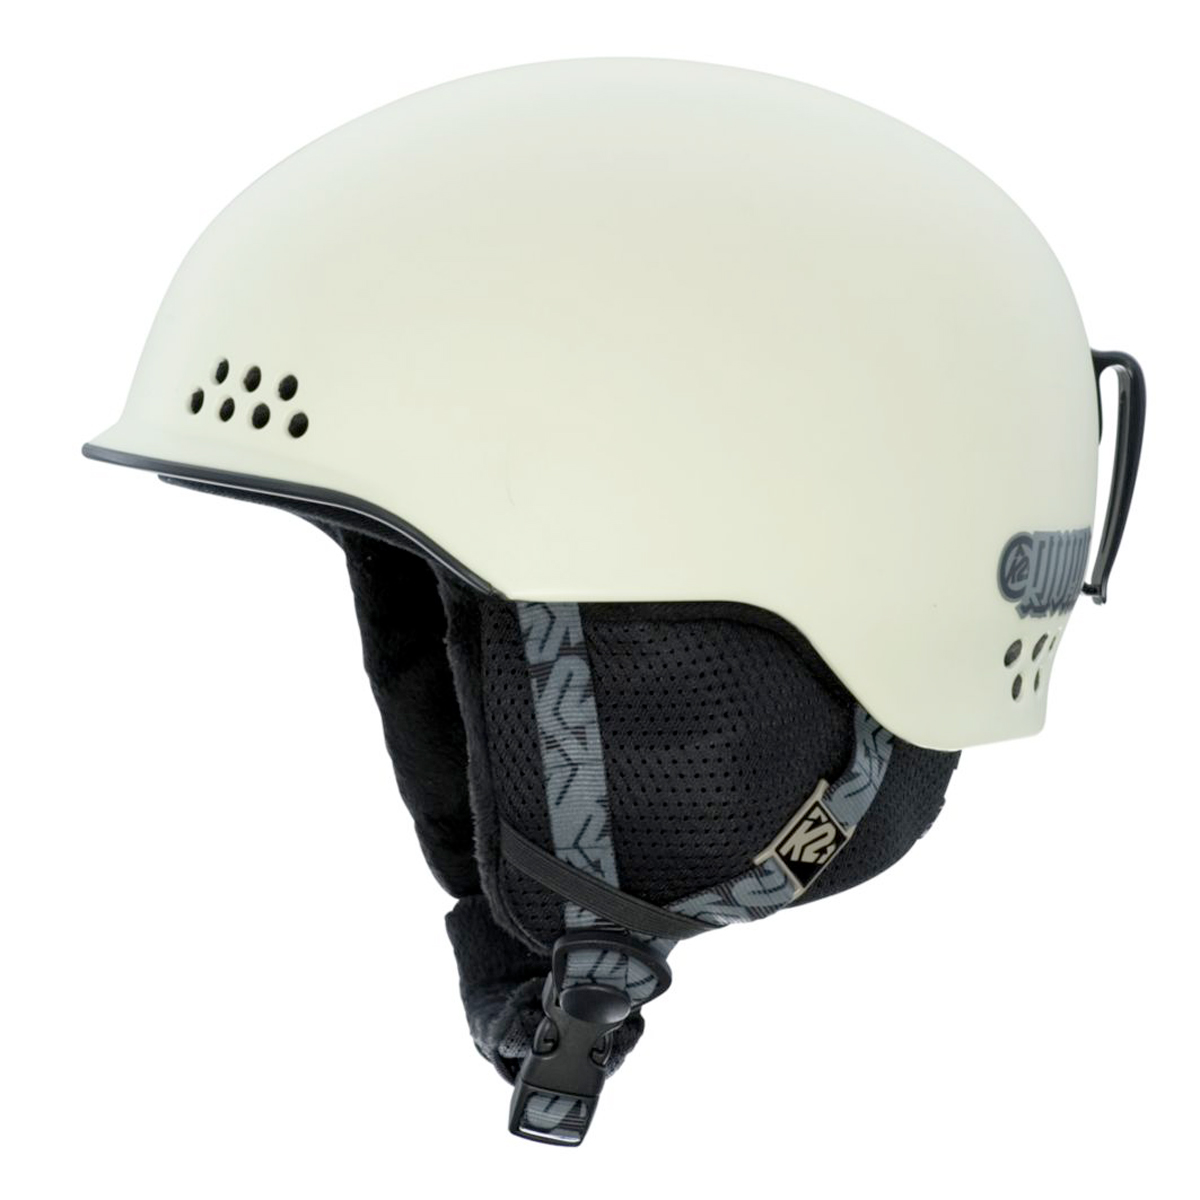 K2 Rival Snowboard Ski Helmet New 2015 in Sand,  Large/XL